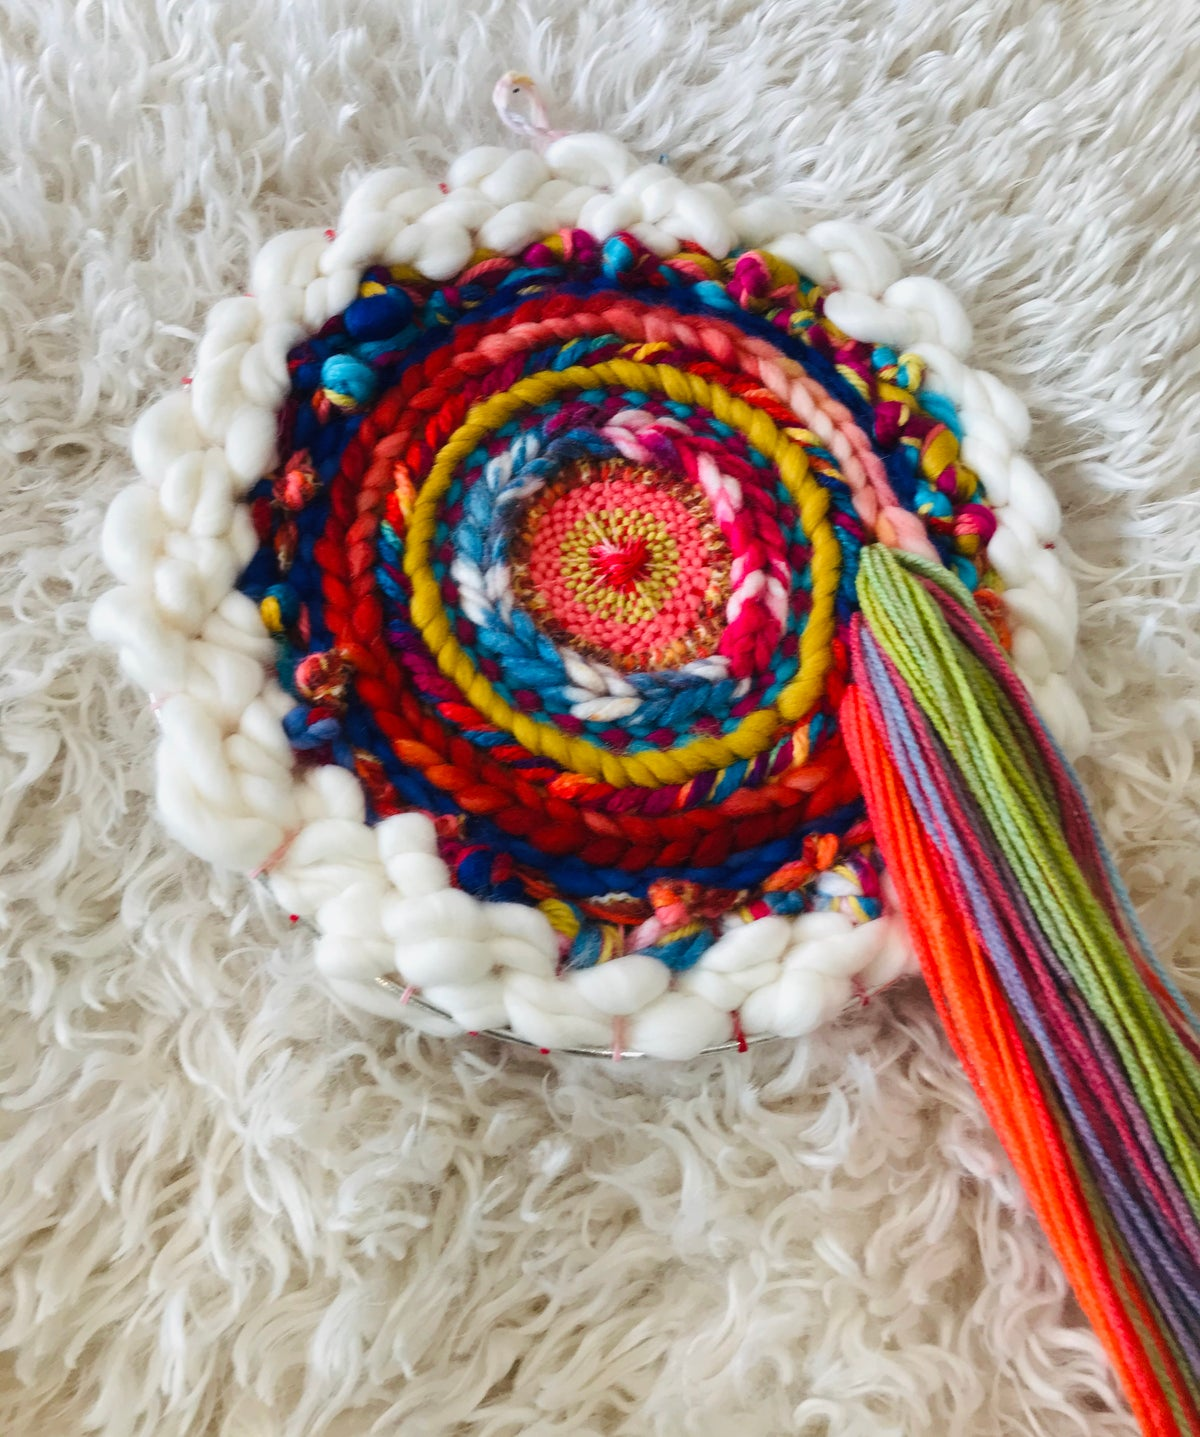 Over and around the Rainbow Circular Weaving